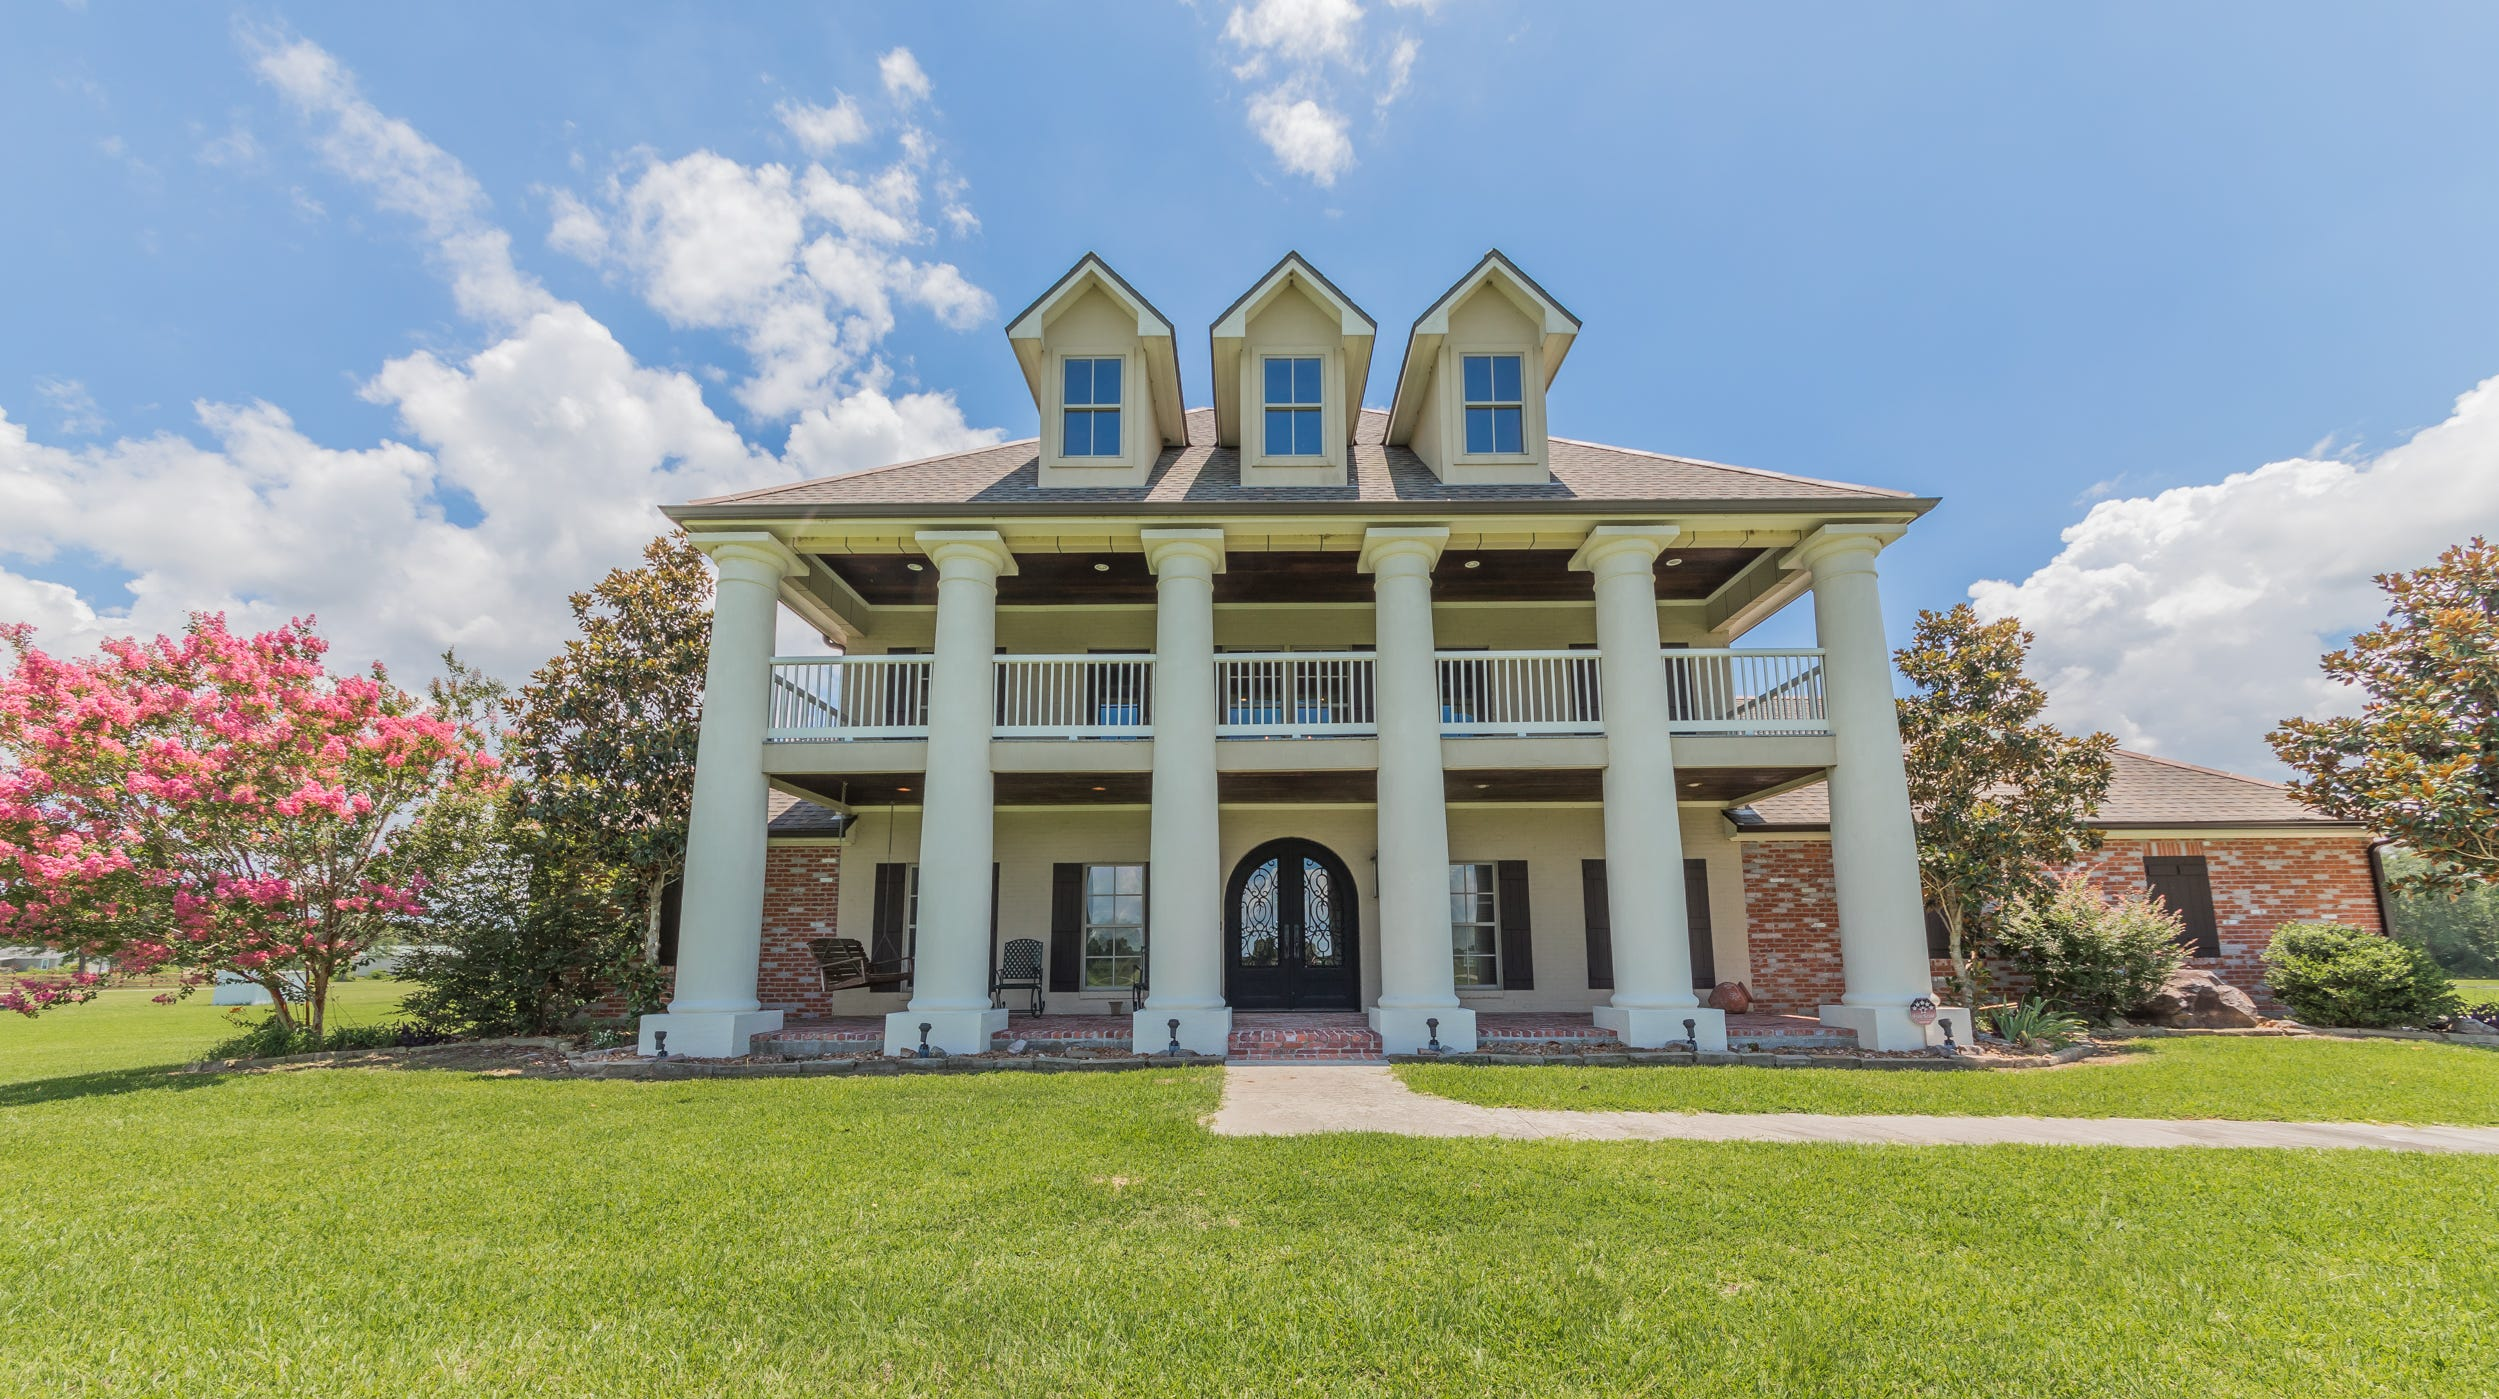 This 5 bedroom, 3 bath home is located at 329 Cocodril Road in Scott, La. It is listed at $899,000.